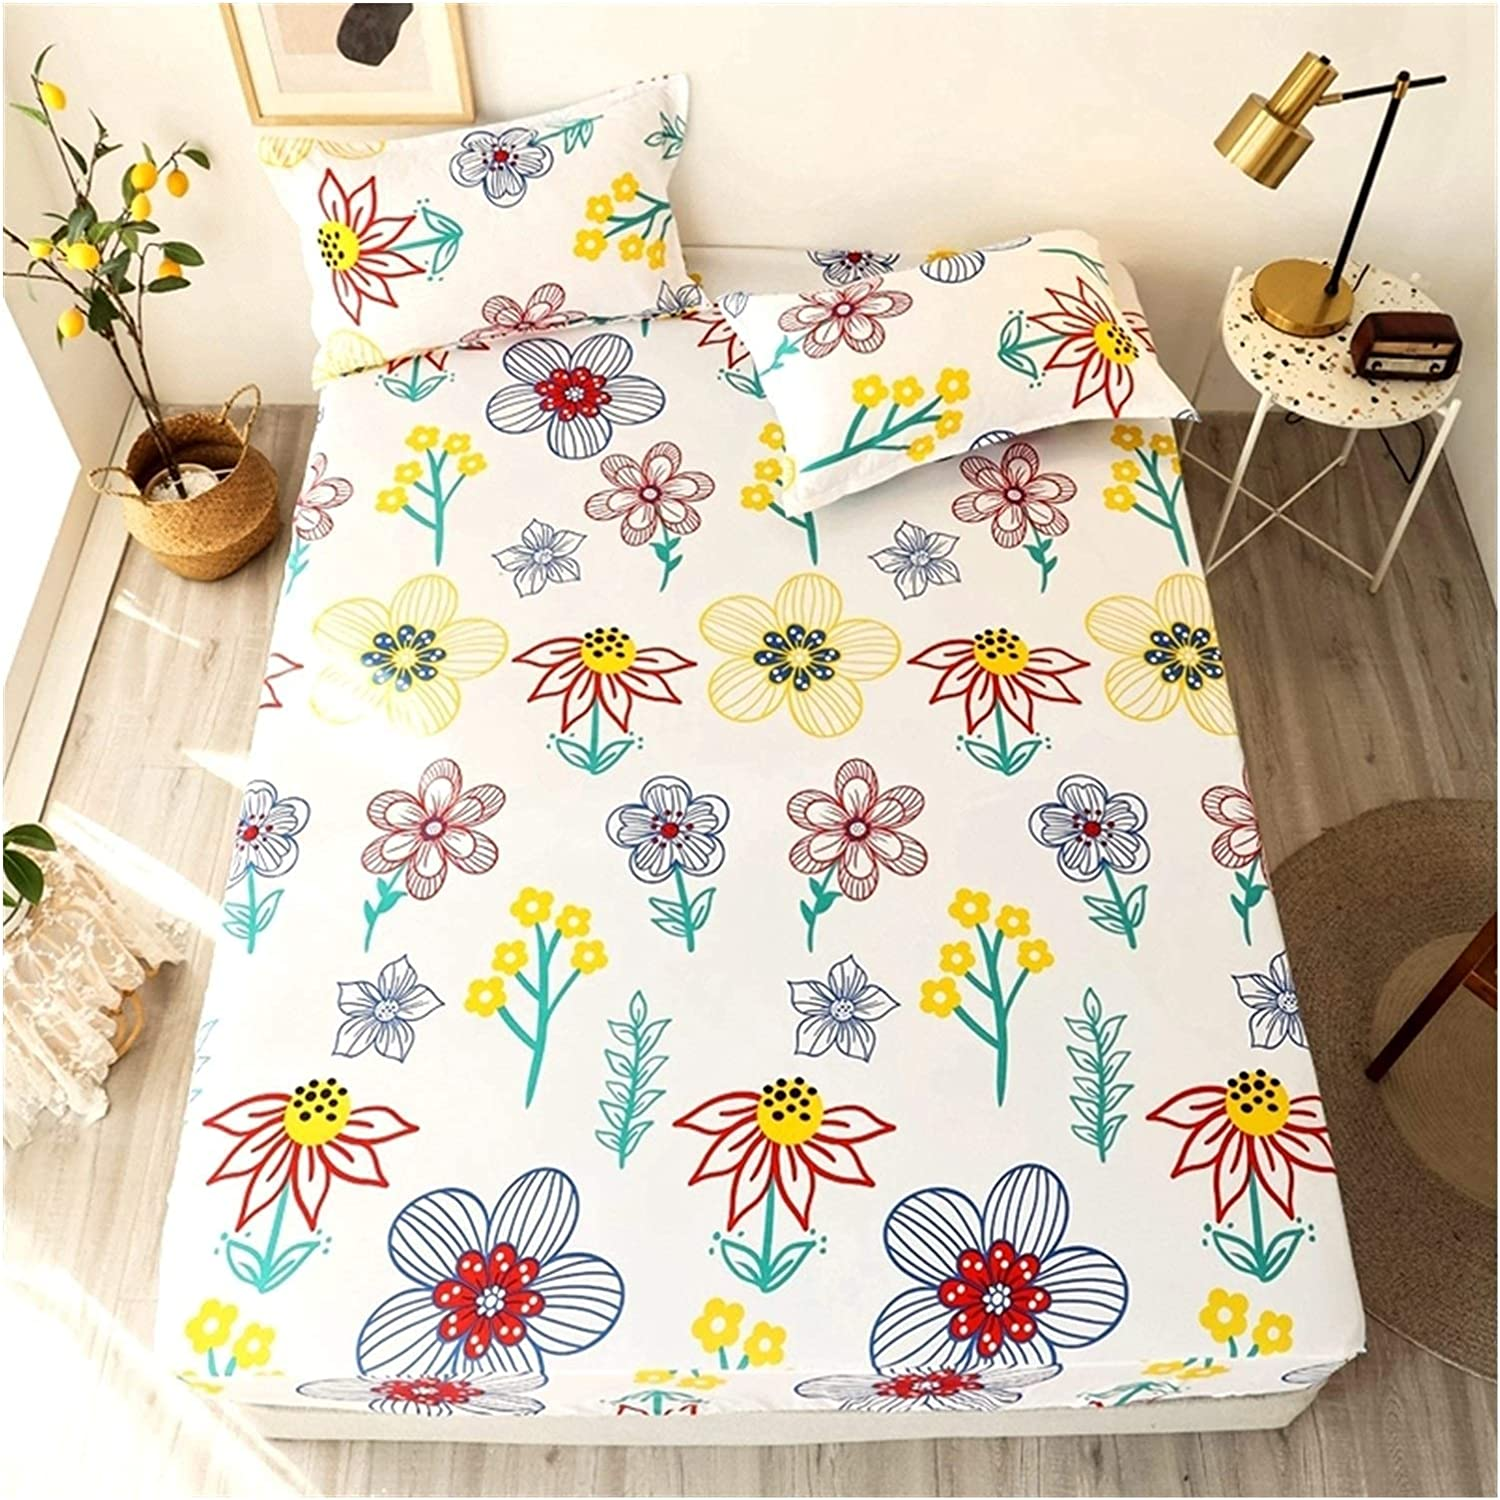 Bed Sheet Sheets 3-Piece Large Pillowcase Genuine Free Shipping with Be Limited time cheap sale